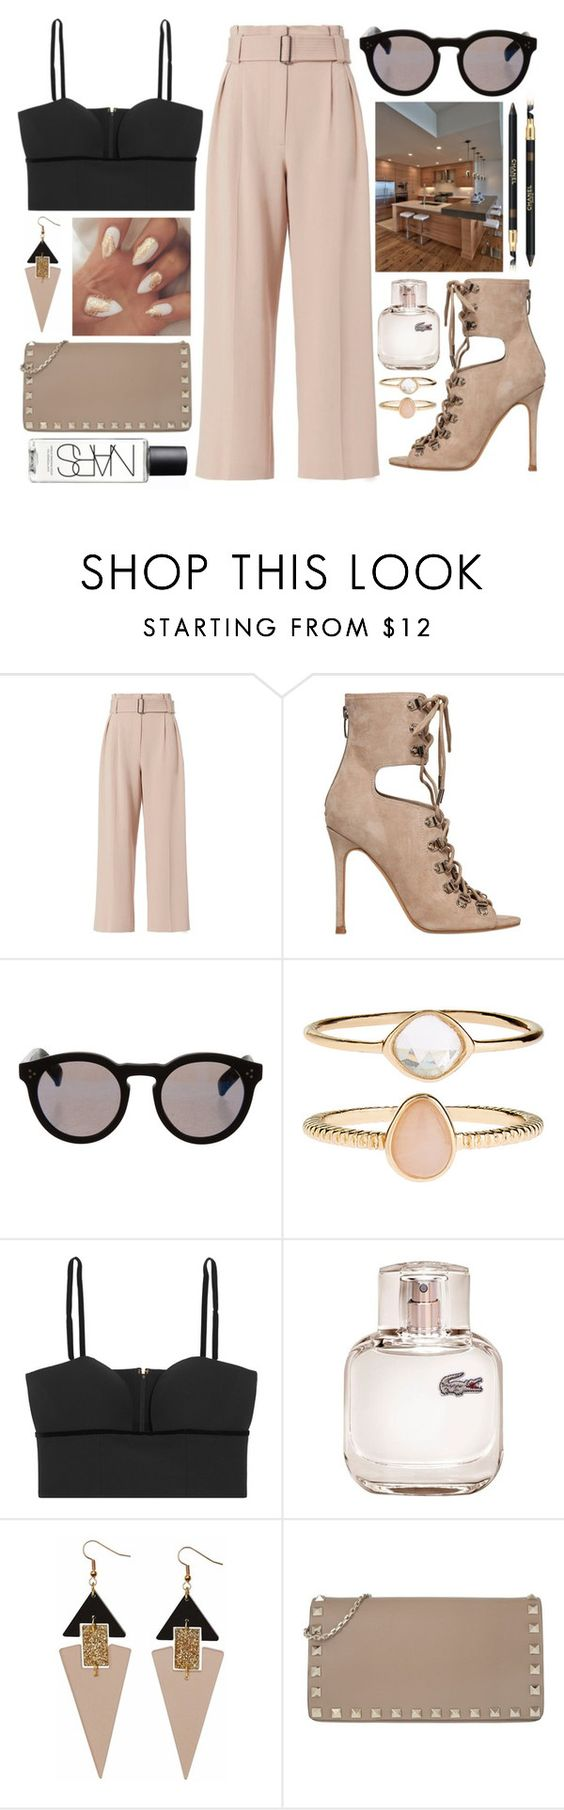 """""""Sin título #784"""" by laurenhipster ❤ liked on Polyvore featuring A.L.C., Kendall + Kylie, Illesteva, Accessorize, Alexander McQueen, Lacoste, Toolally, Valentino and NARS Cosmetics"""